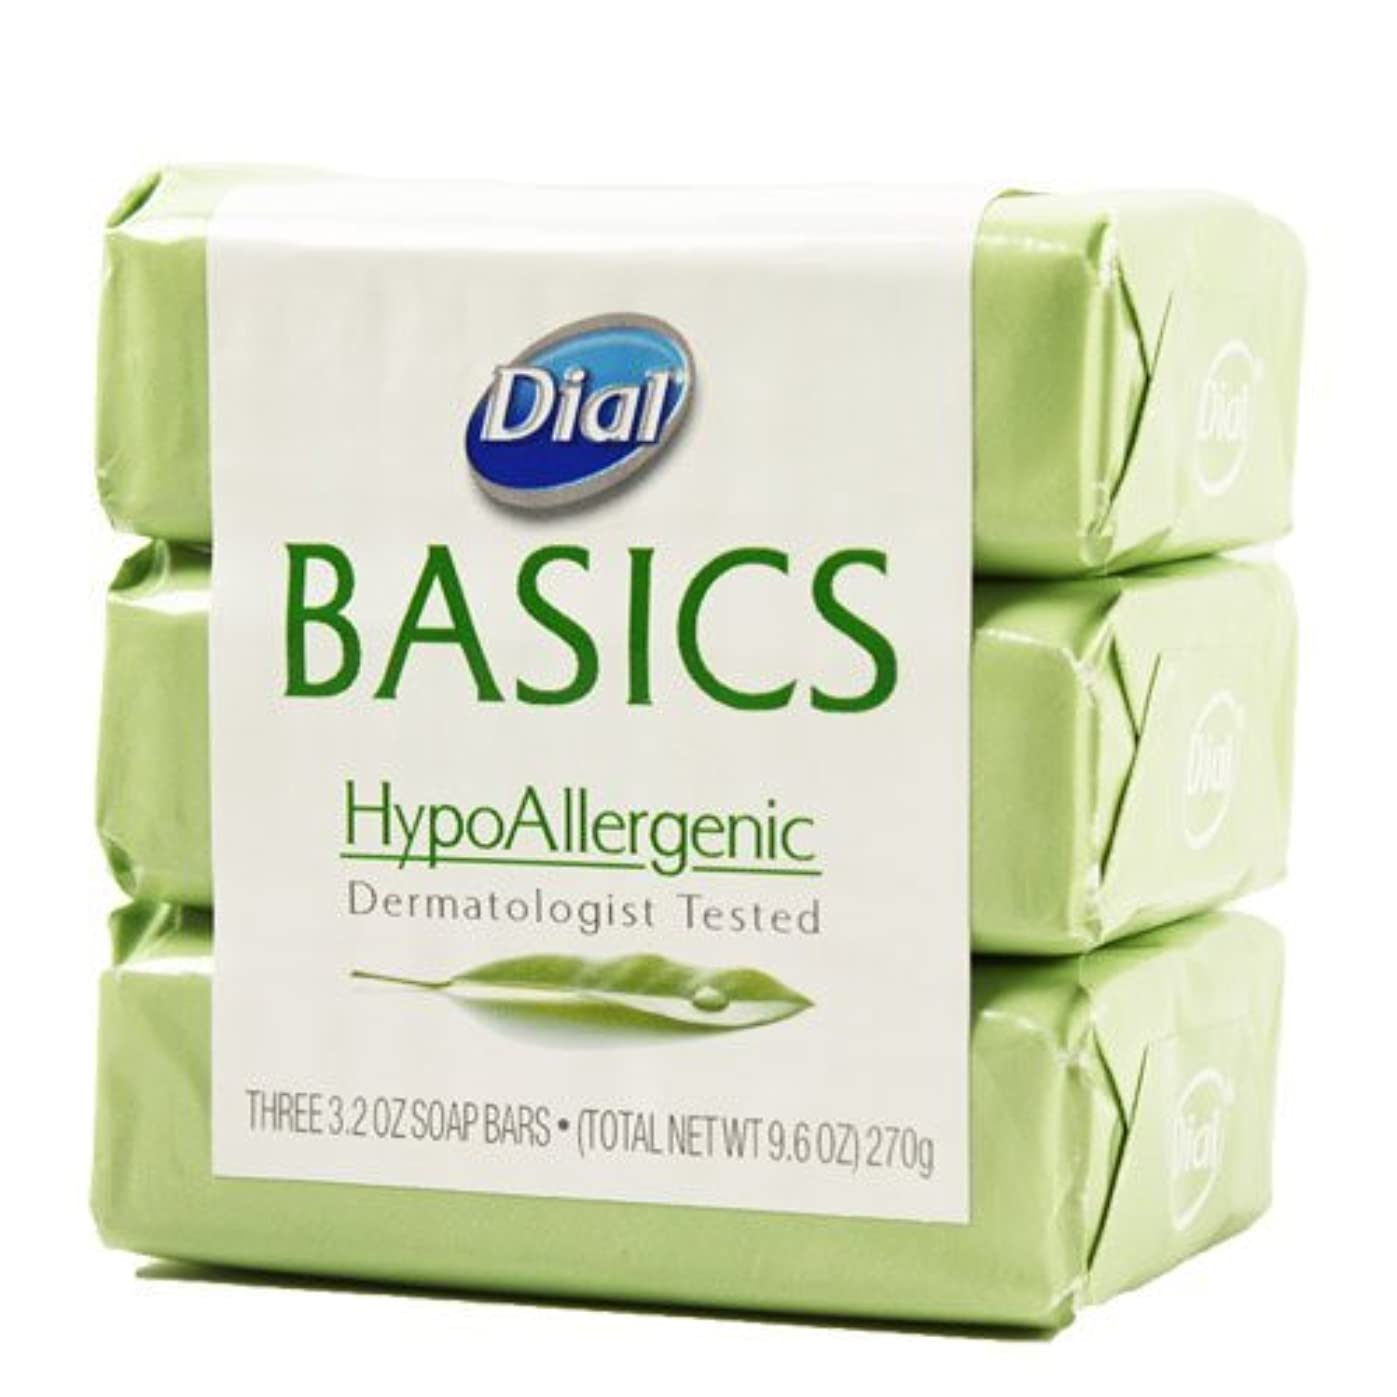 五十ルームにぎやかDial Basics HypoAllergenic Dermatologist Tested Bar Soap, 3.2 oz (18 Bars) by Basics